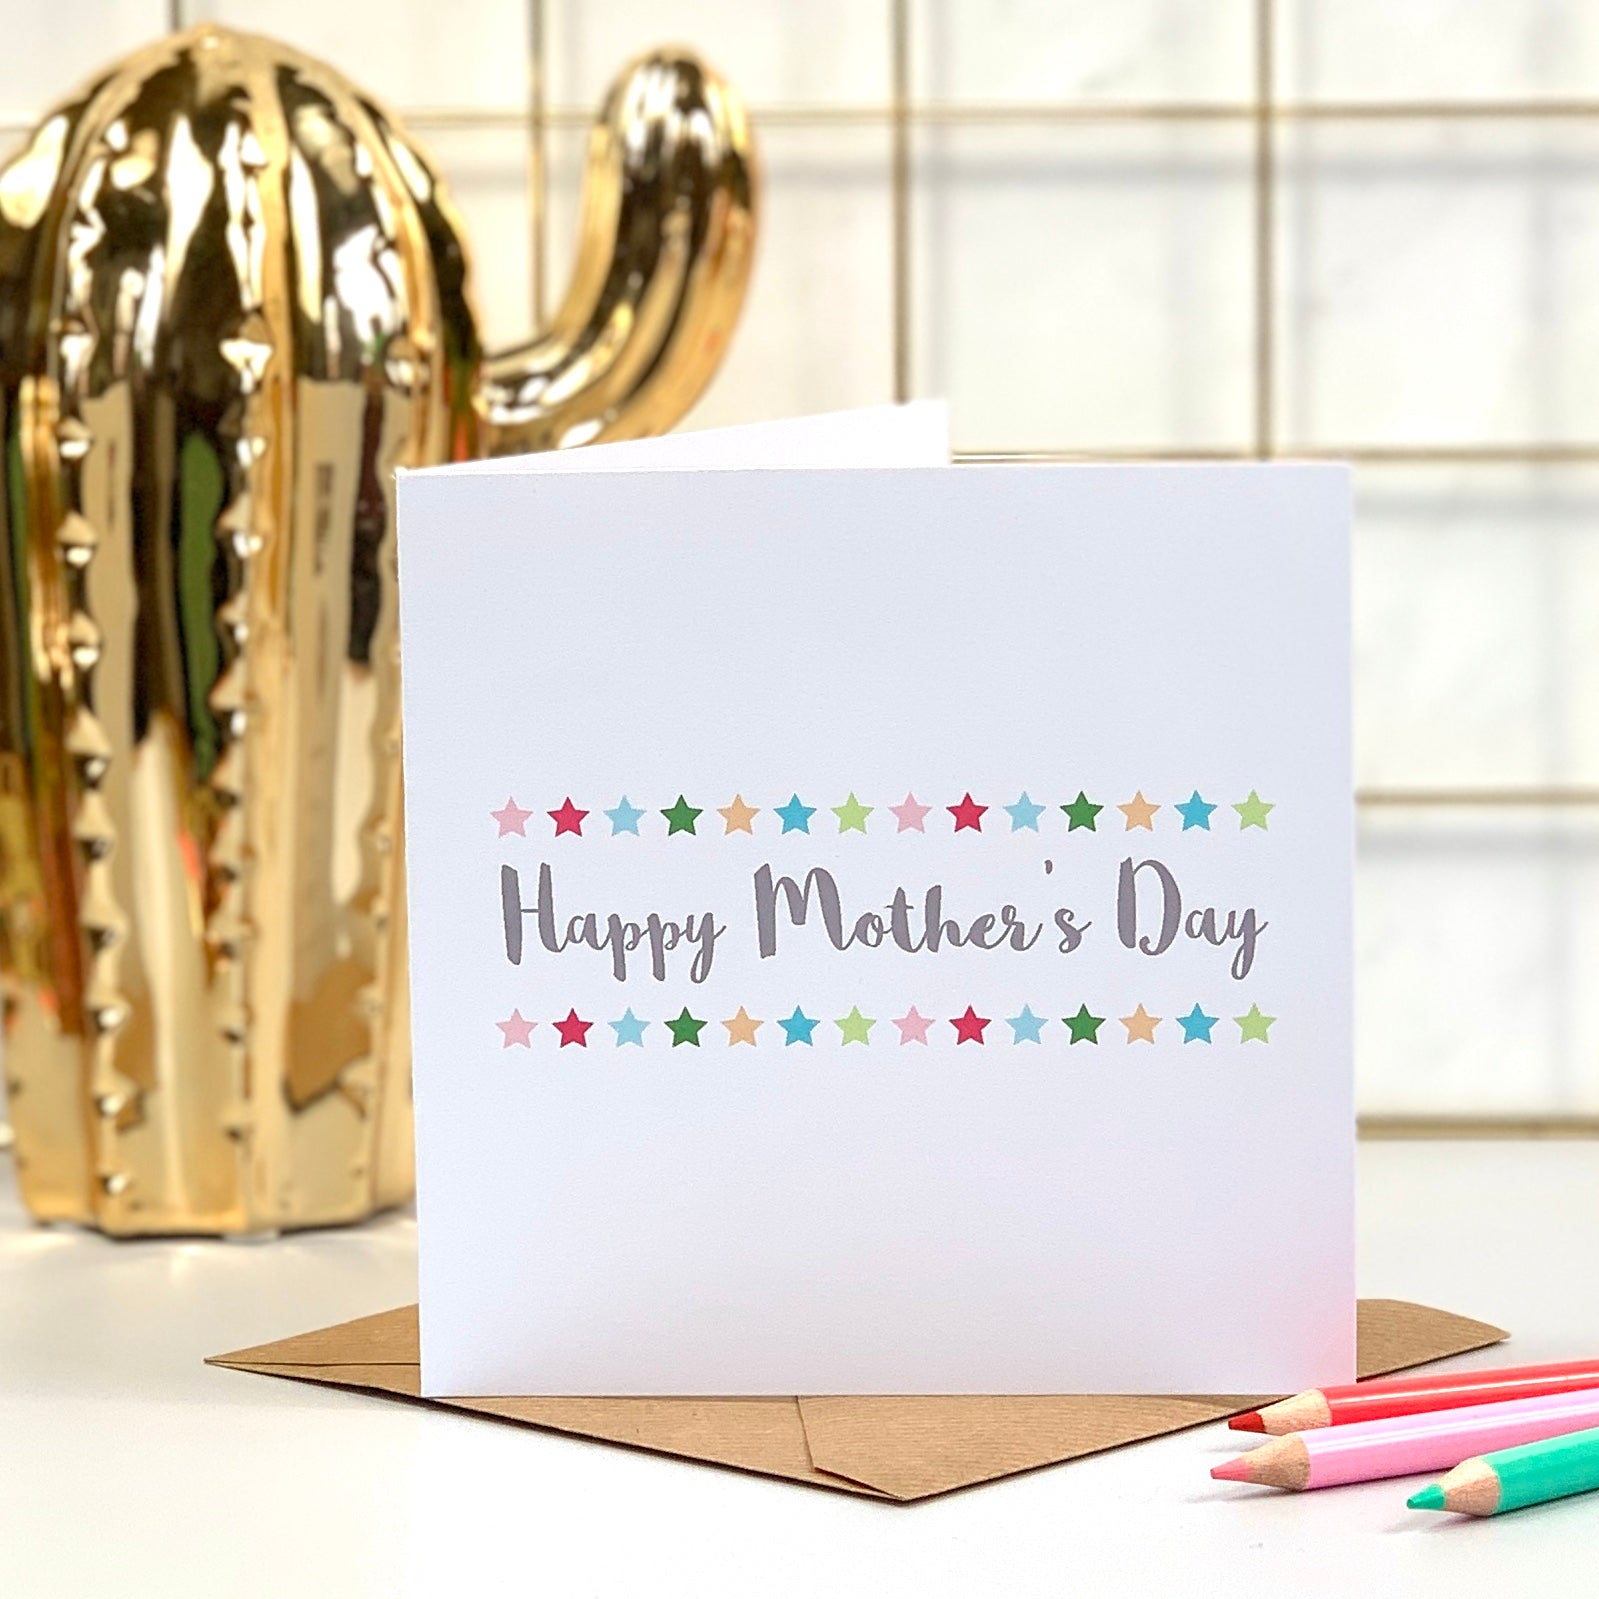 Happy Mother's Day Star Card